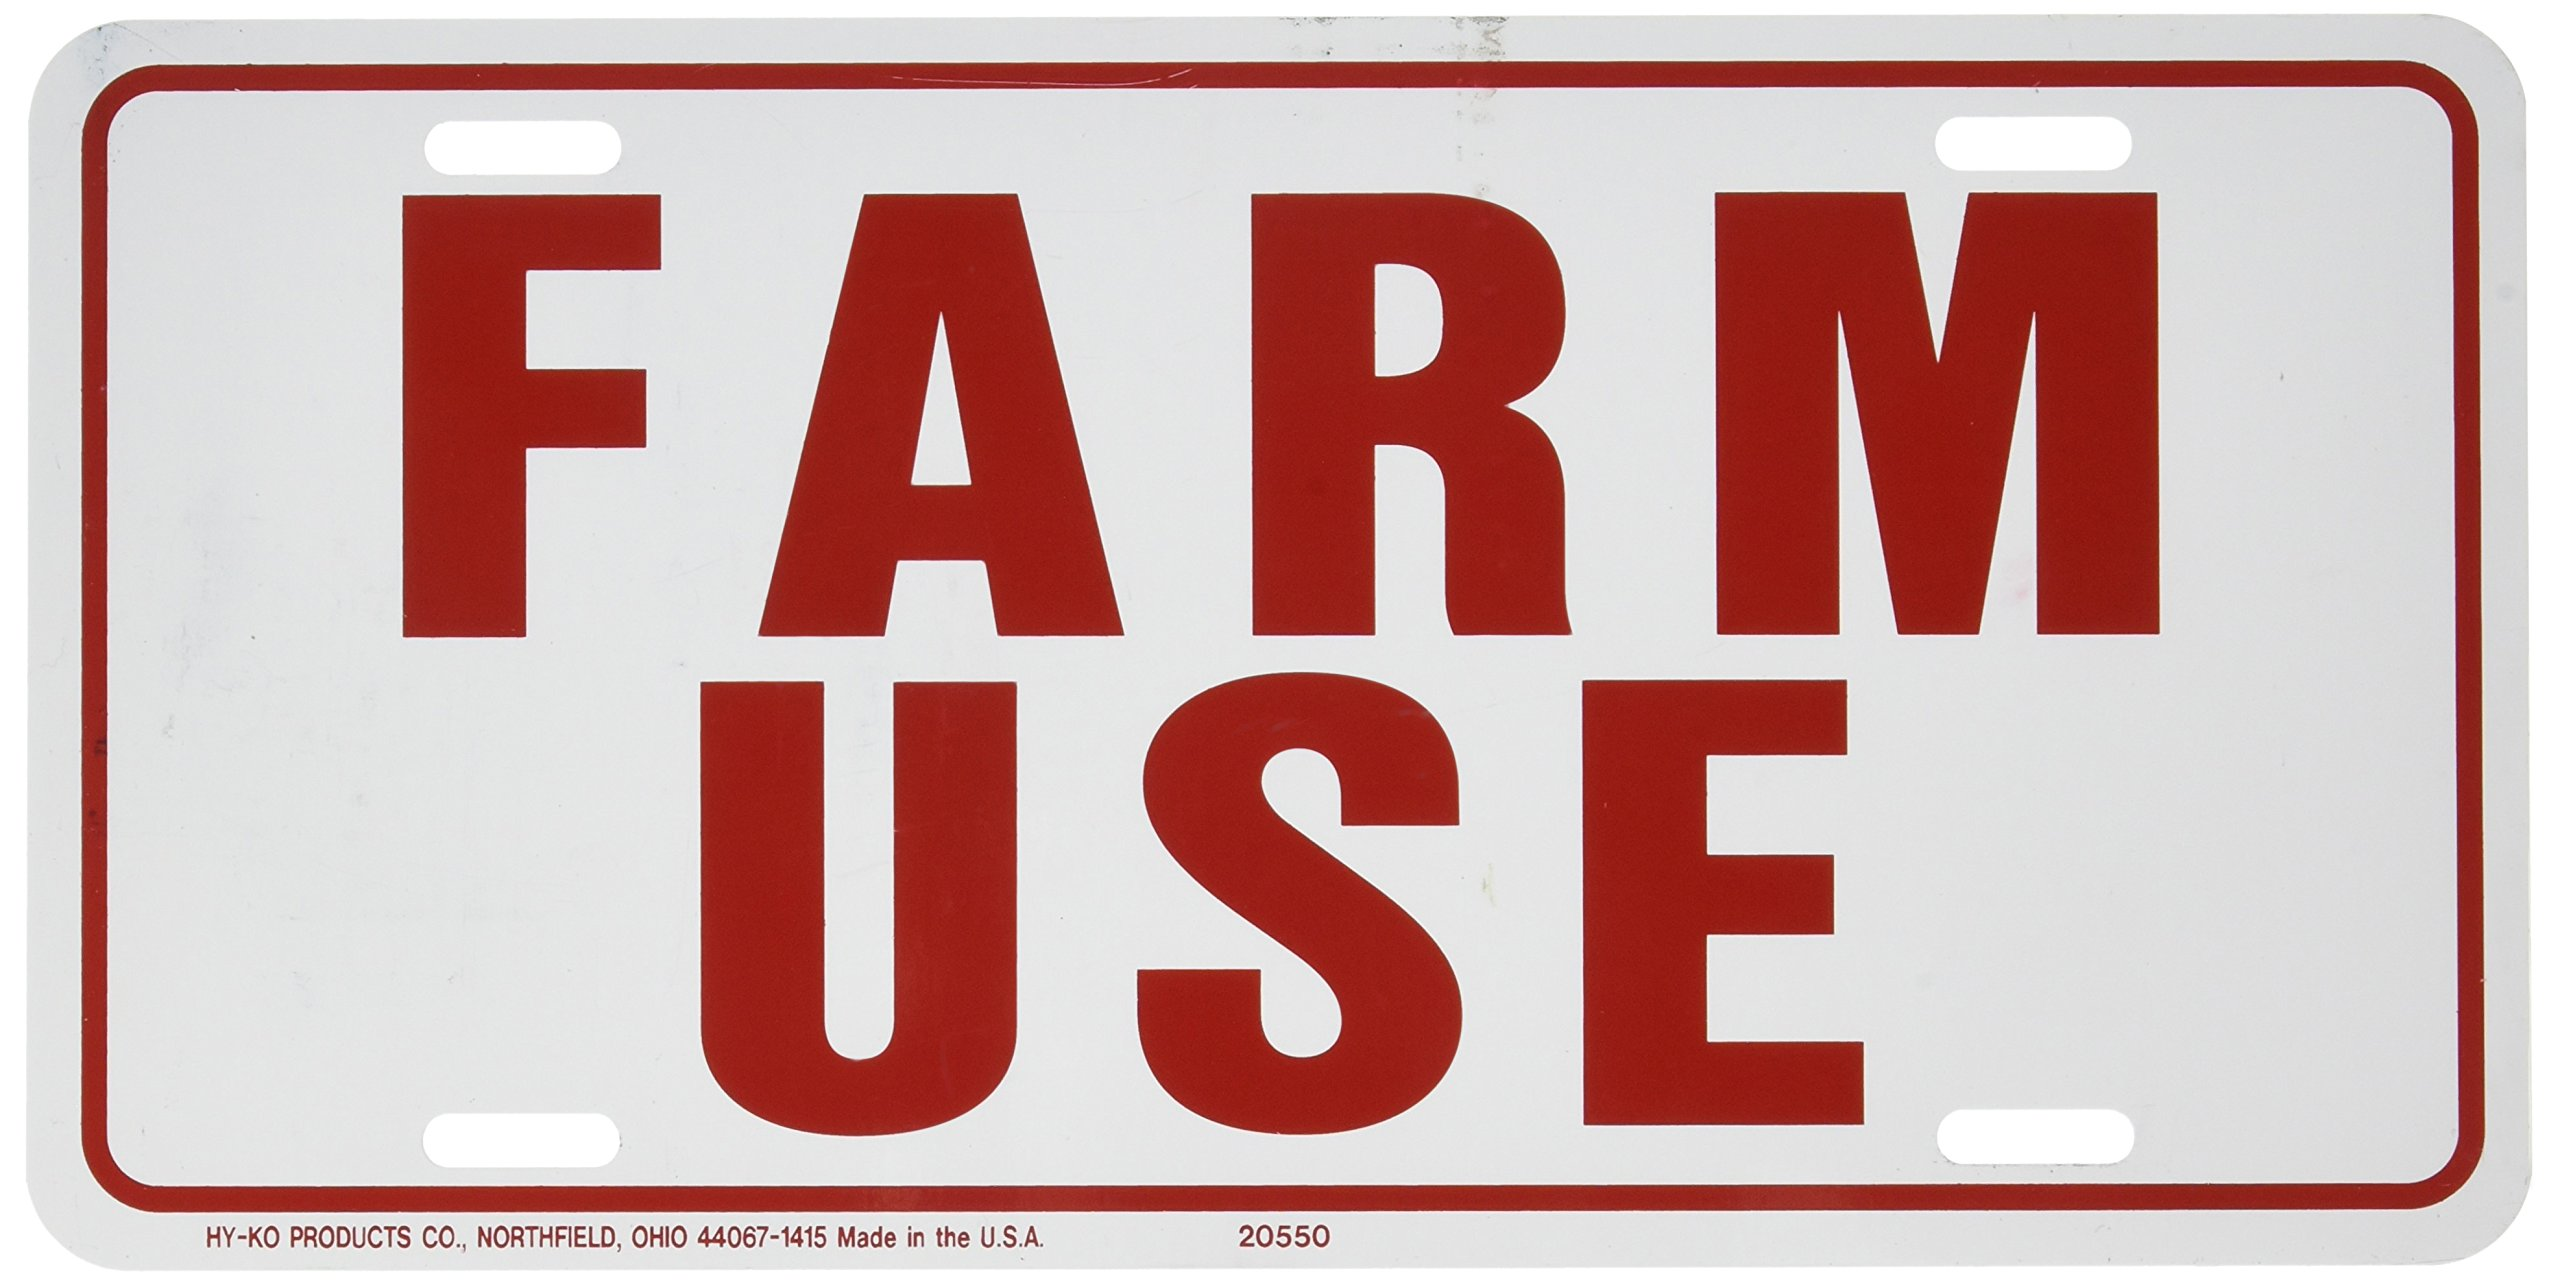 HY-KO 361951 Farm Use Id Tag White/Red, 6(h) x 12(w) -Inches by HY-KO RODUCTS